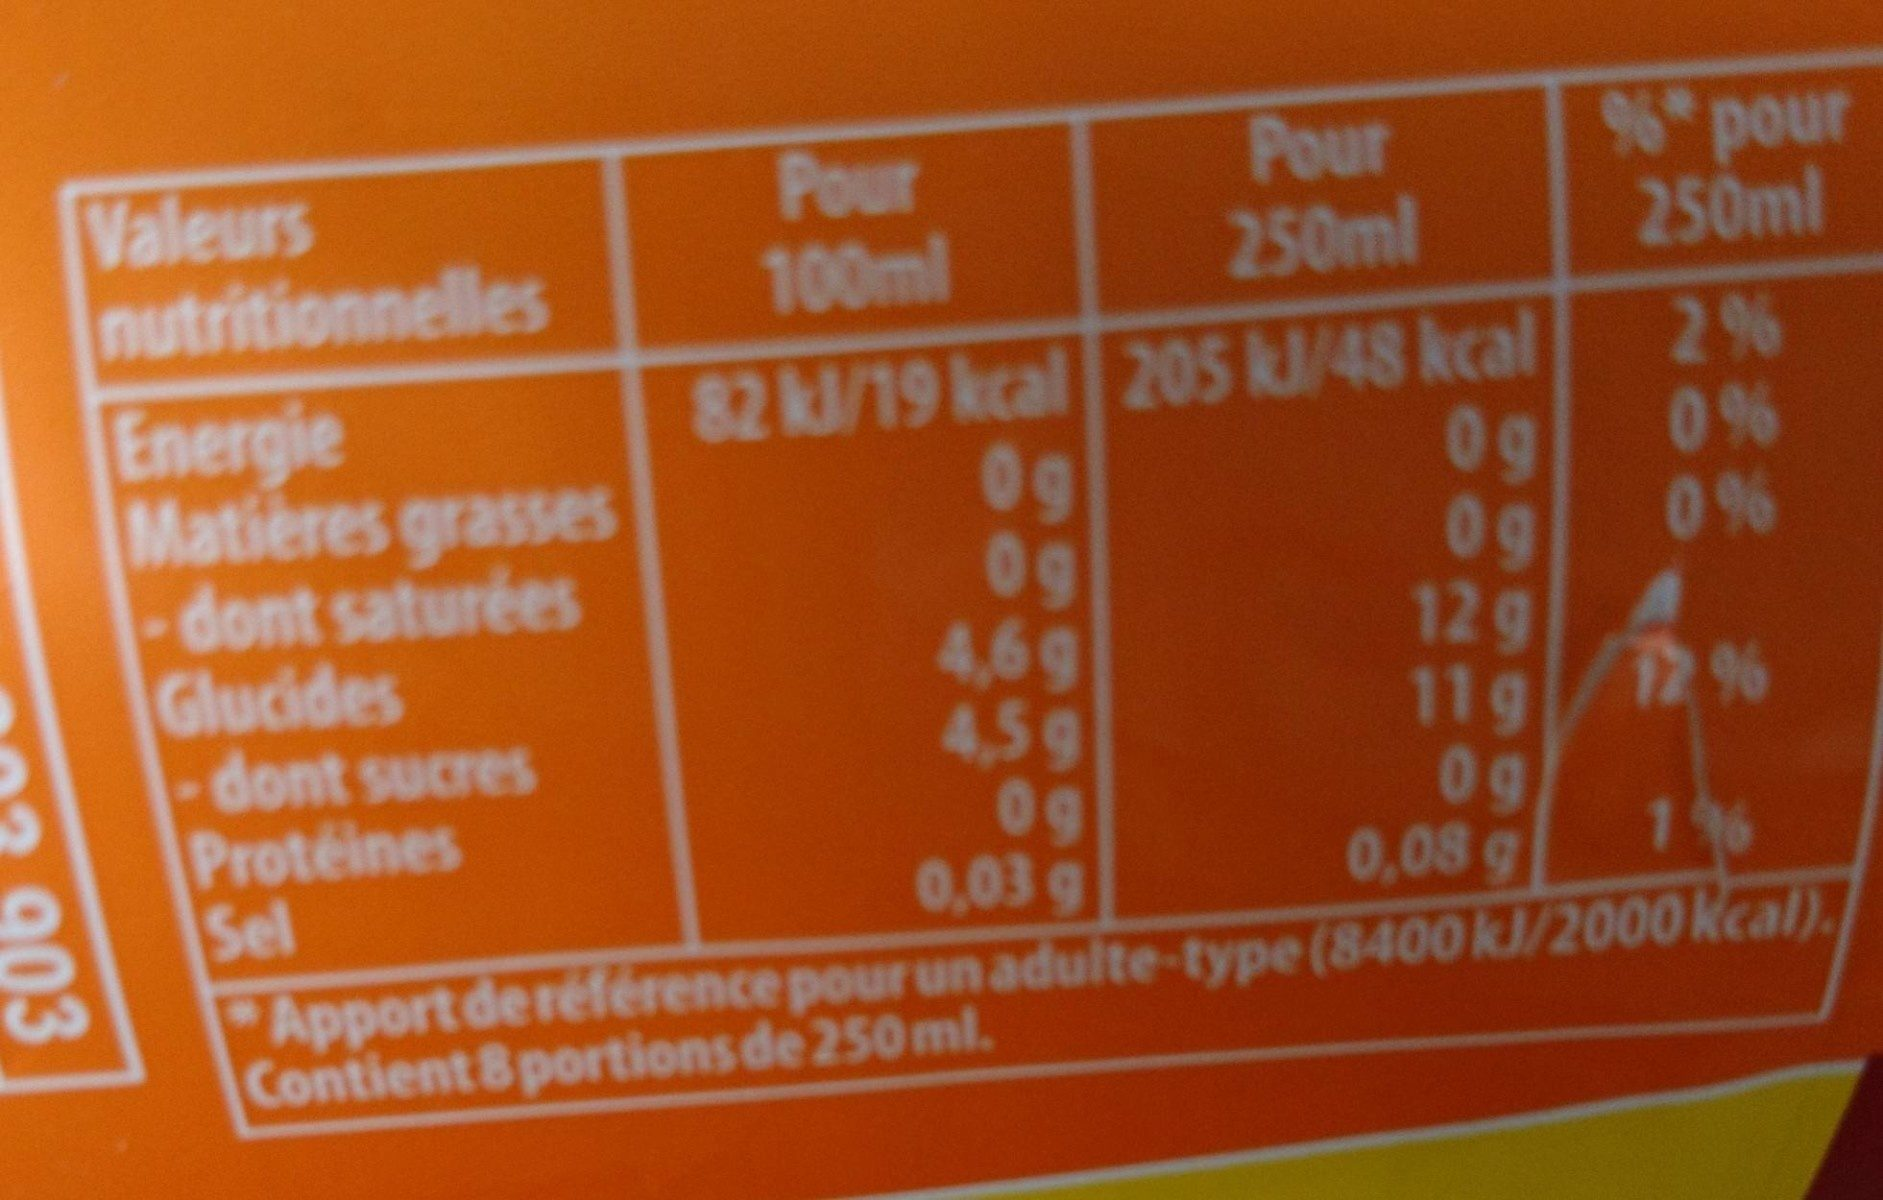 Ice tea pêche - Nutrition facts